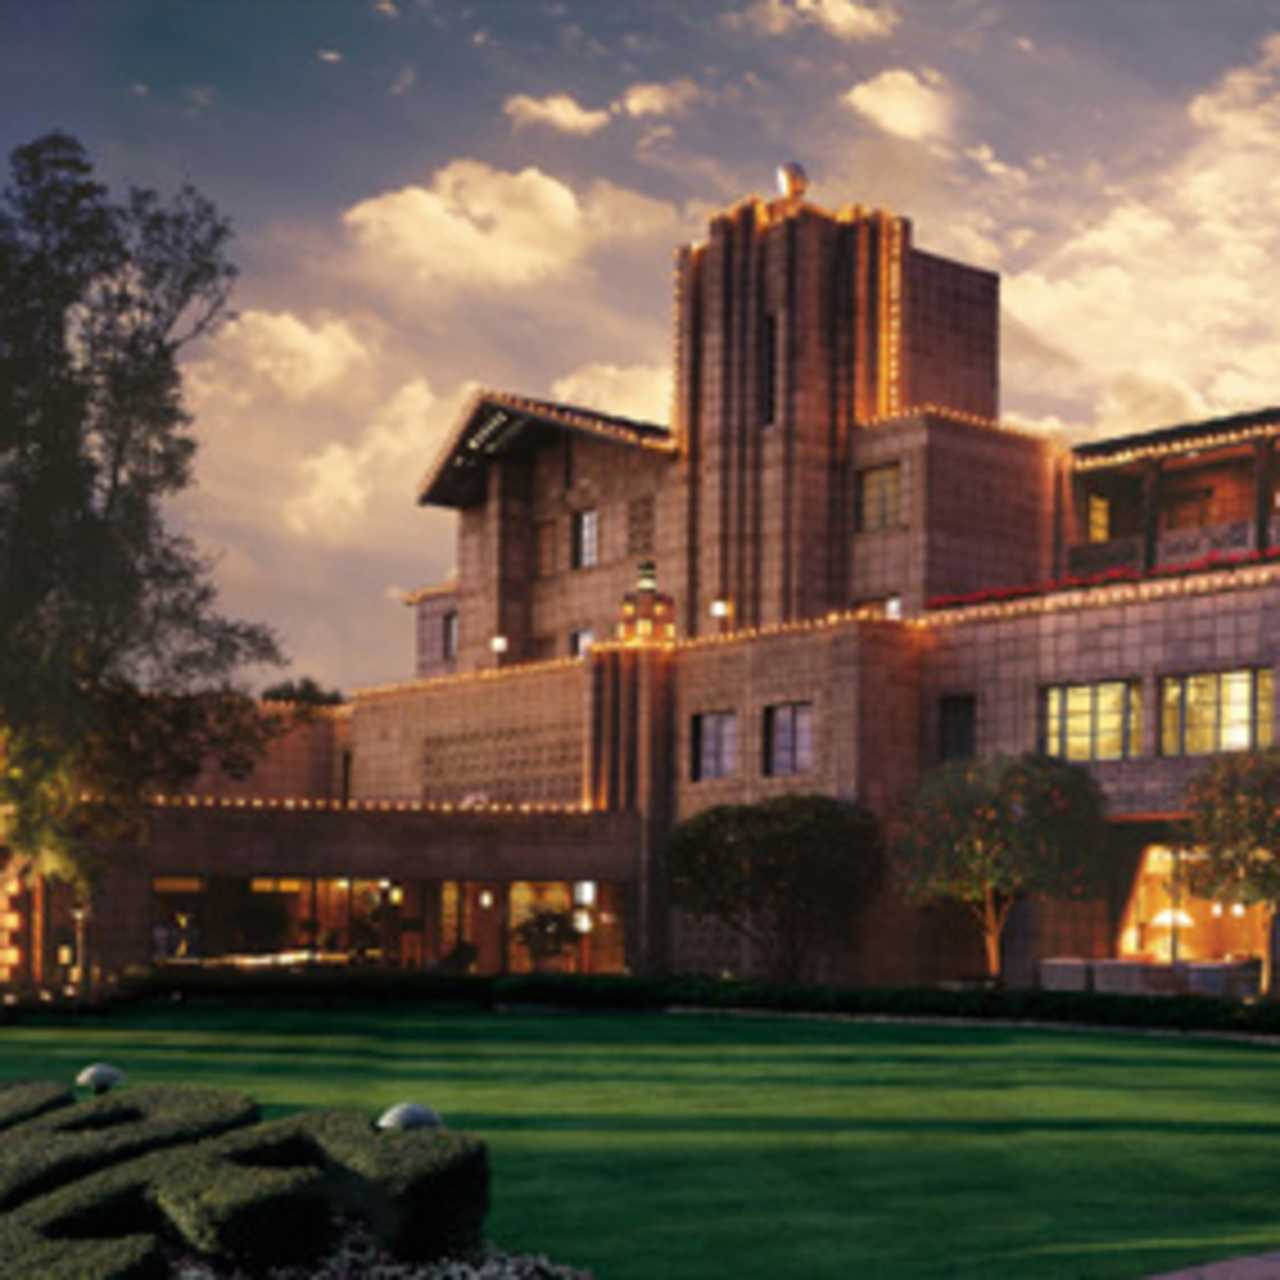 Colter Park Apartments: Hotel, Arizona: Arizona Biltmore Resort & Spa